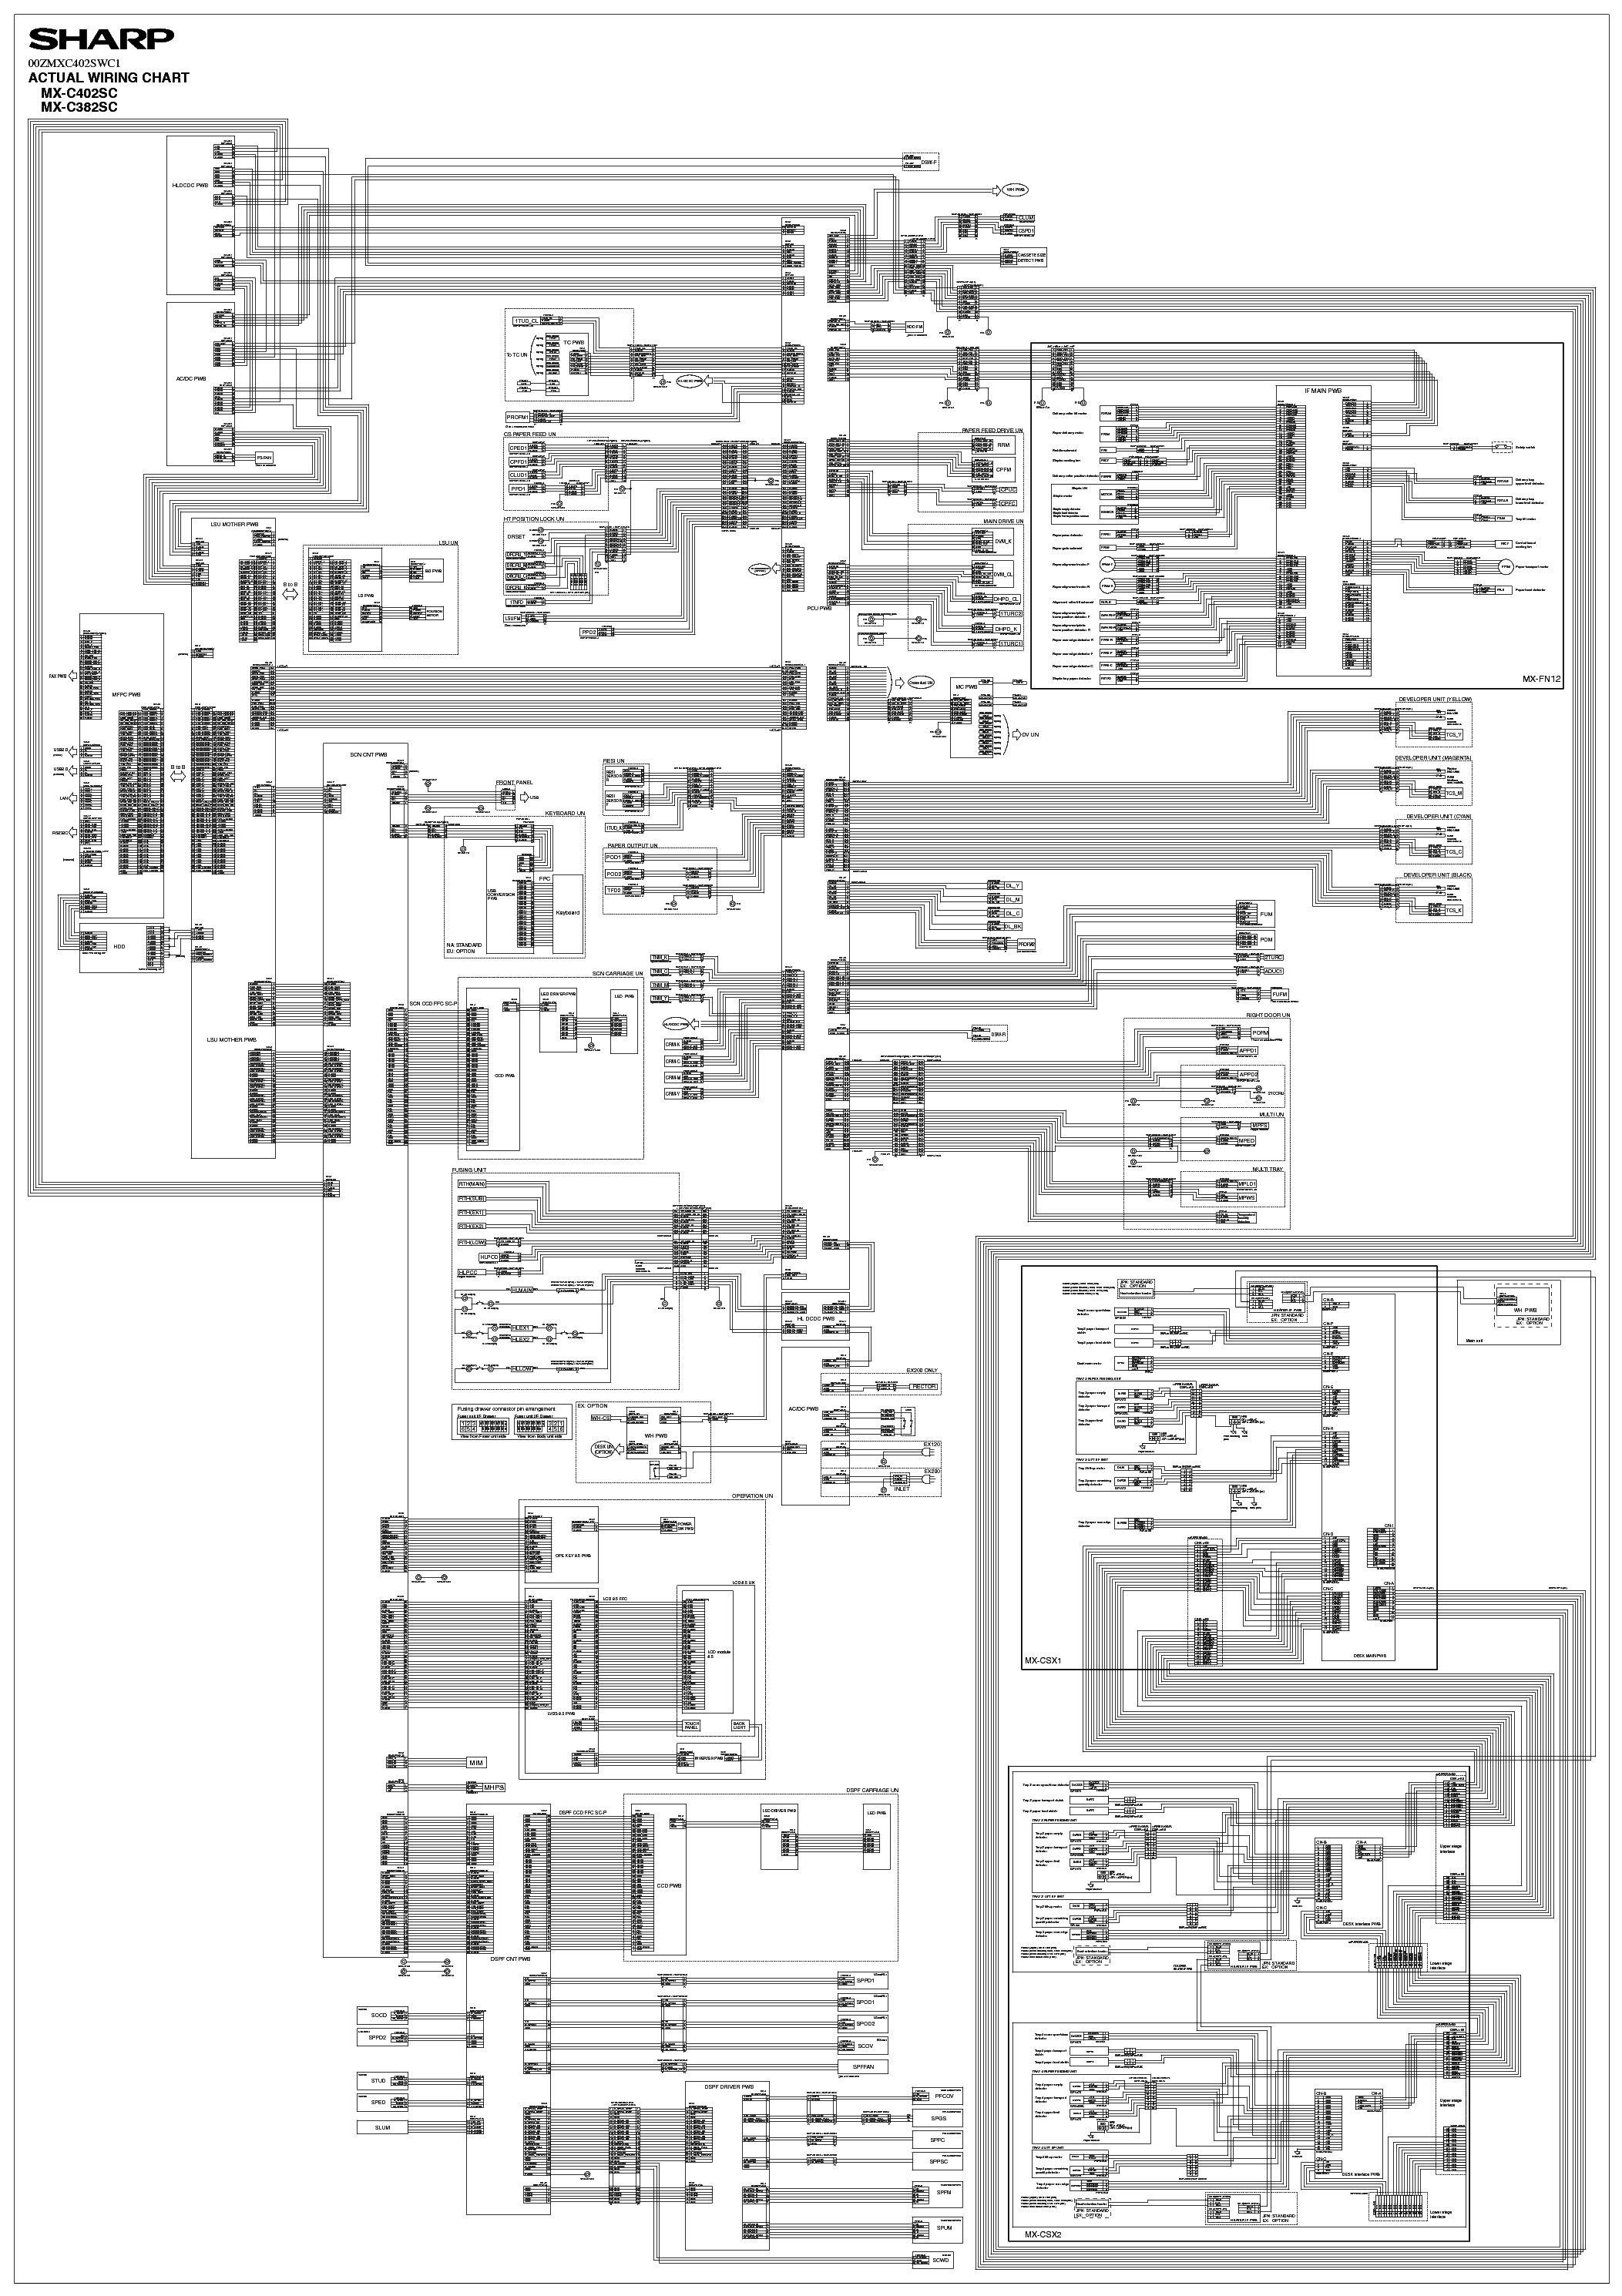 SHARP MX-C382SC MX-C402SC WIRING DIAGRAM Service Manual